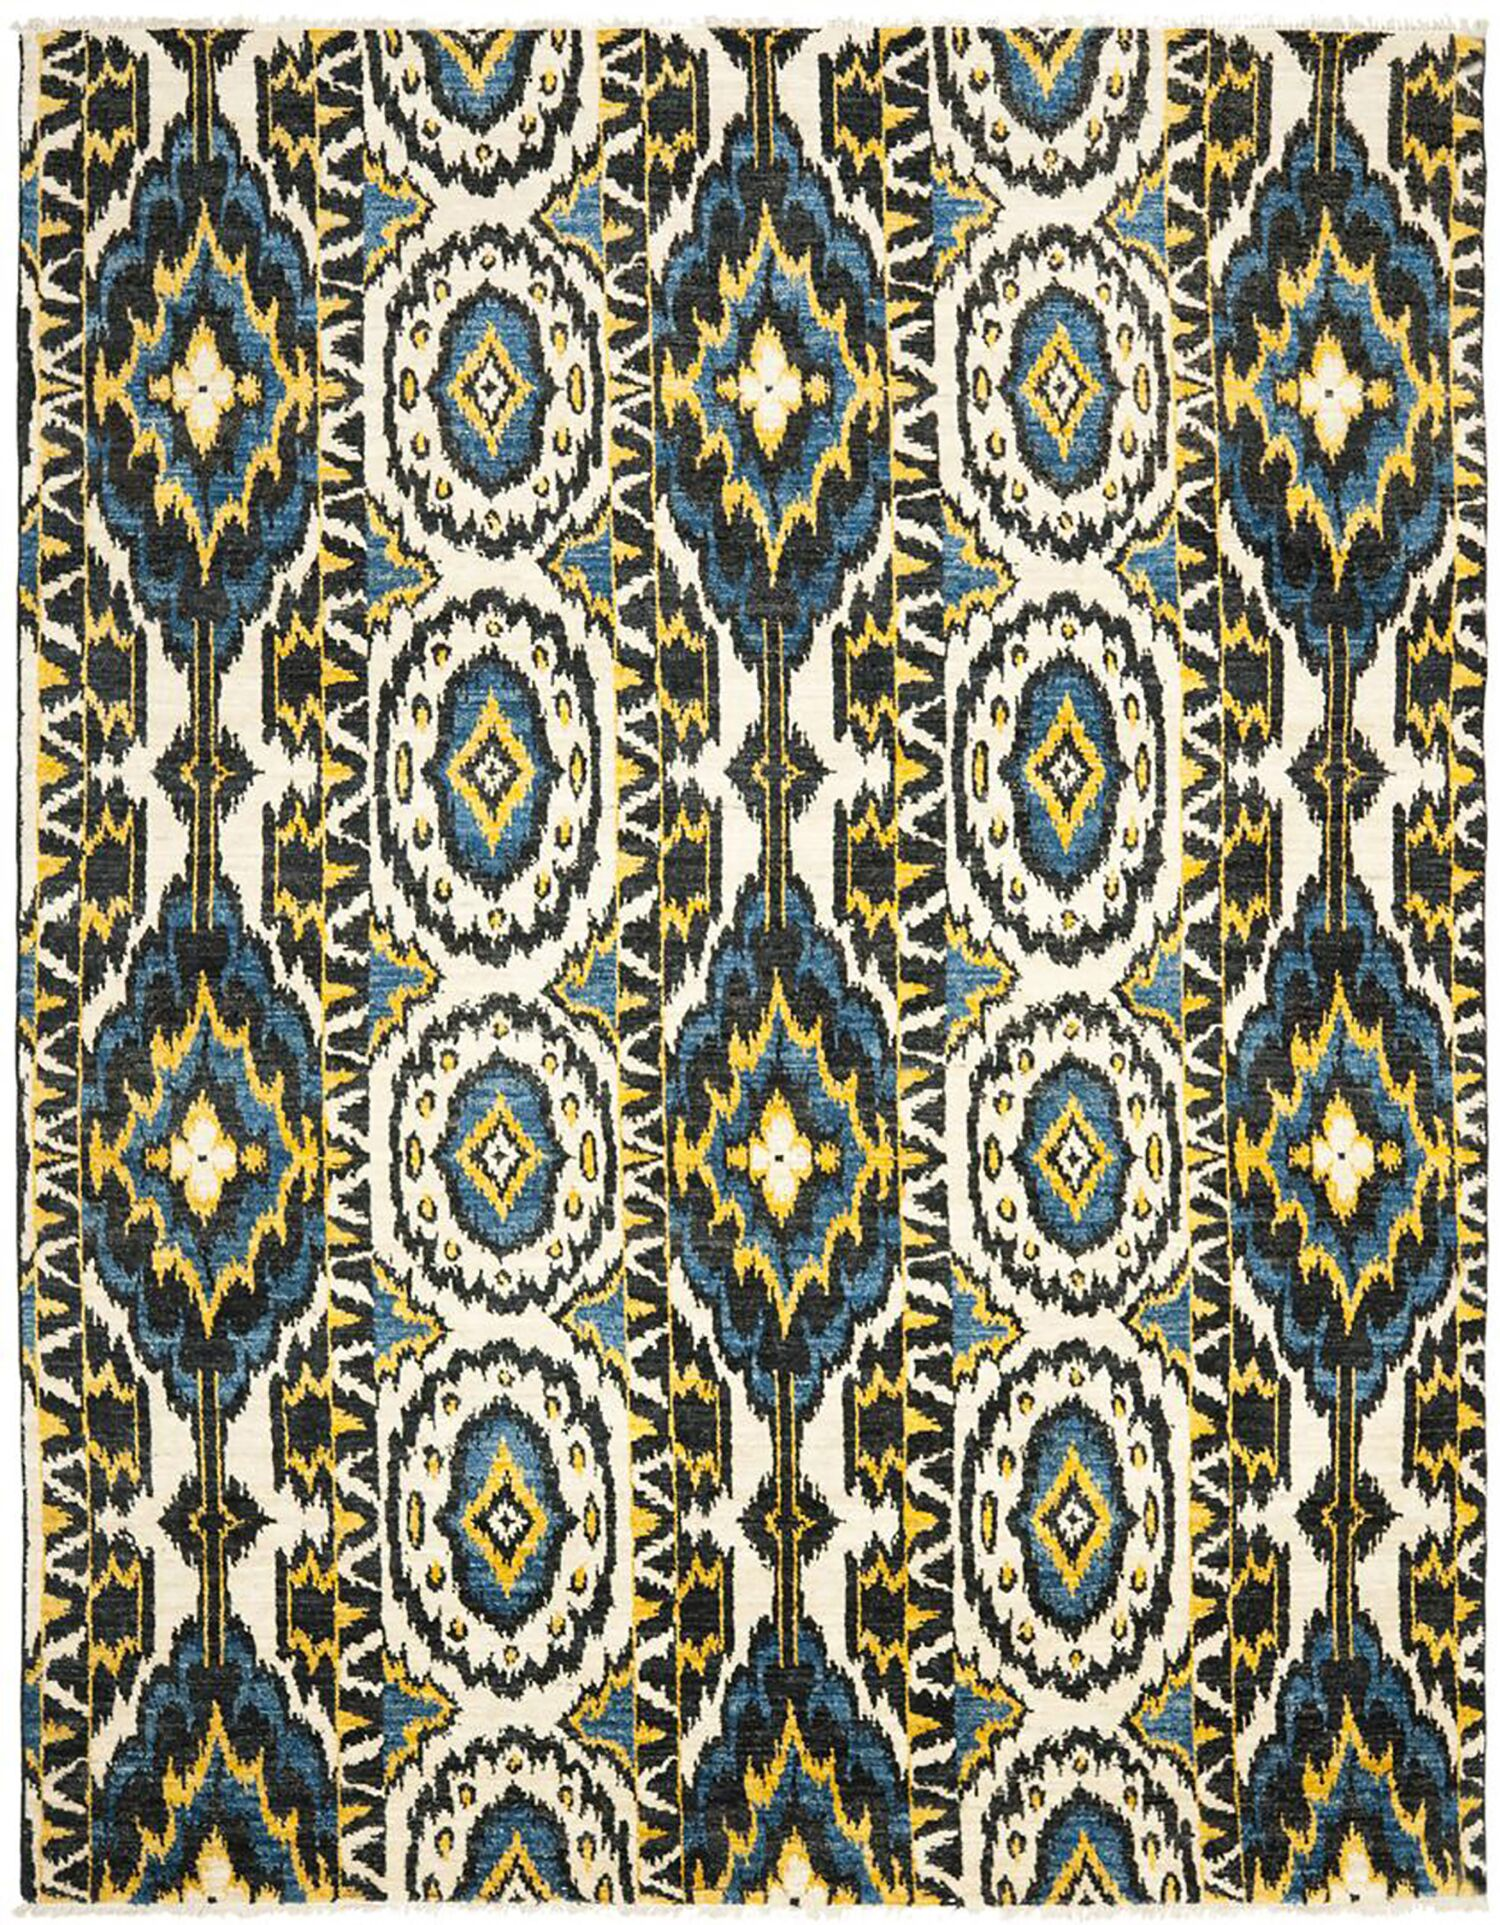 Almonburry Hand-Knotted Ivory/Blue Area Rug Rug Size: Rectangle 8' x 10'